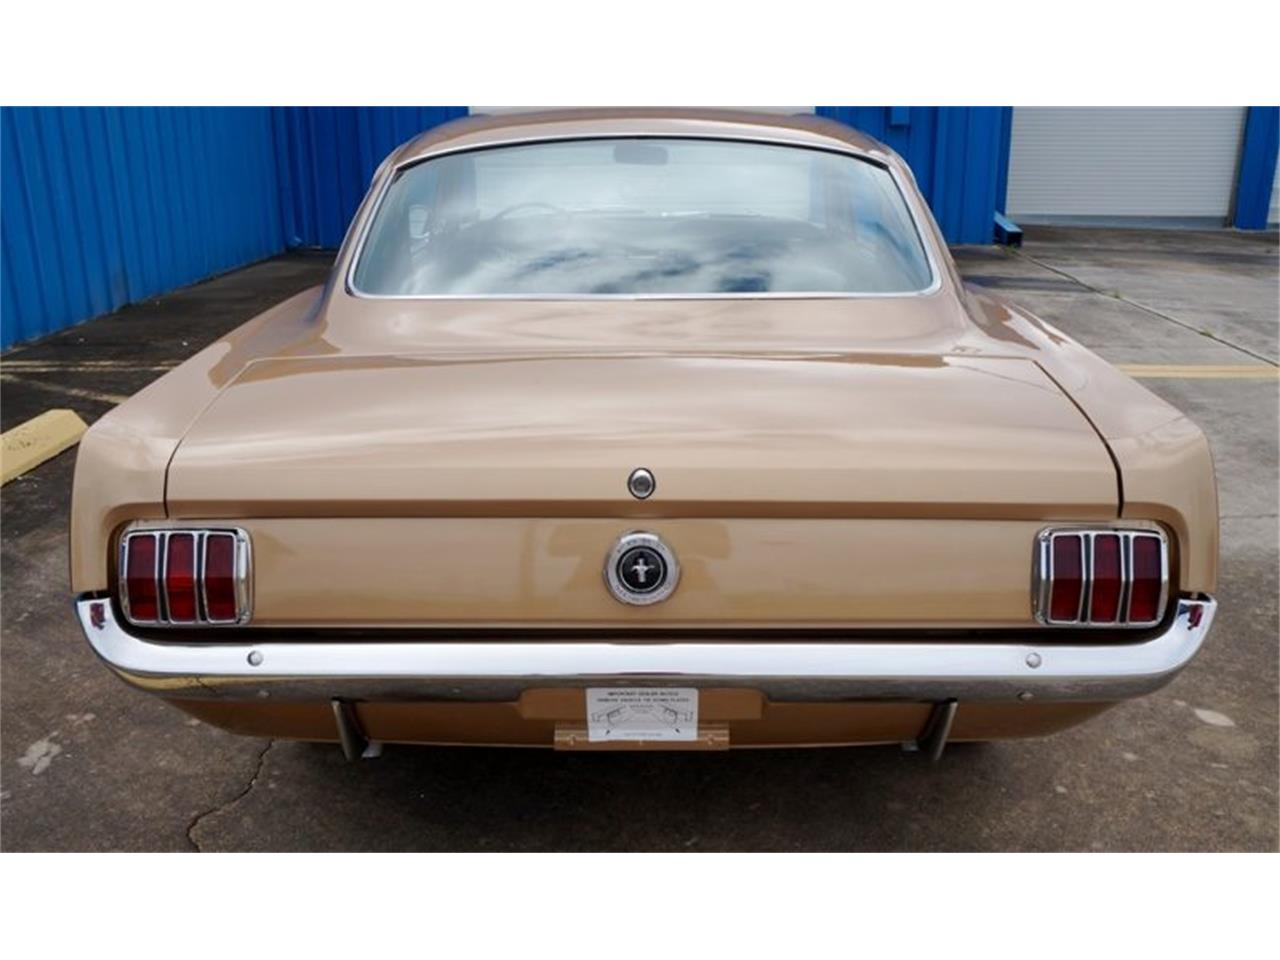 Large Picture of 1965 Mustang - $37,500.00 Offered by a Private Seller - Q6QR